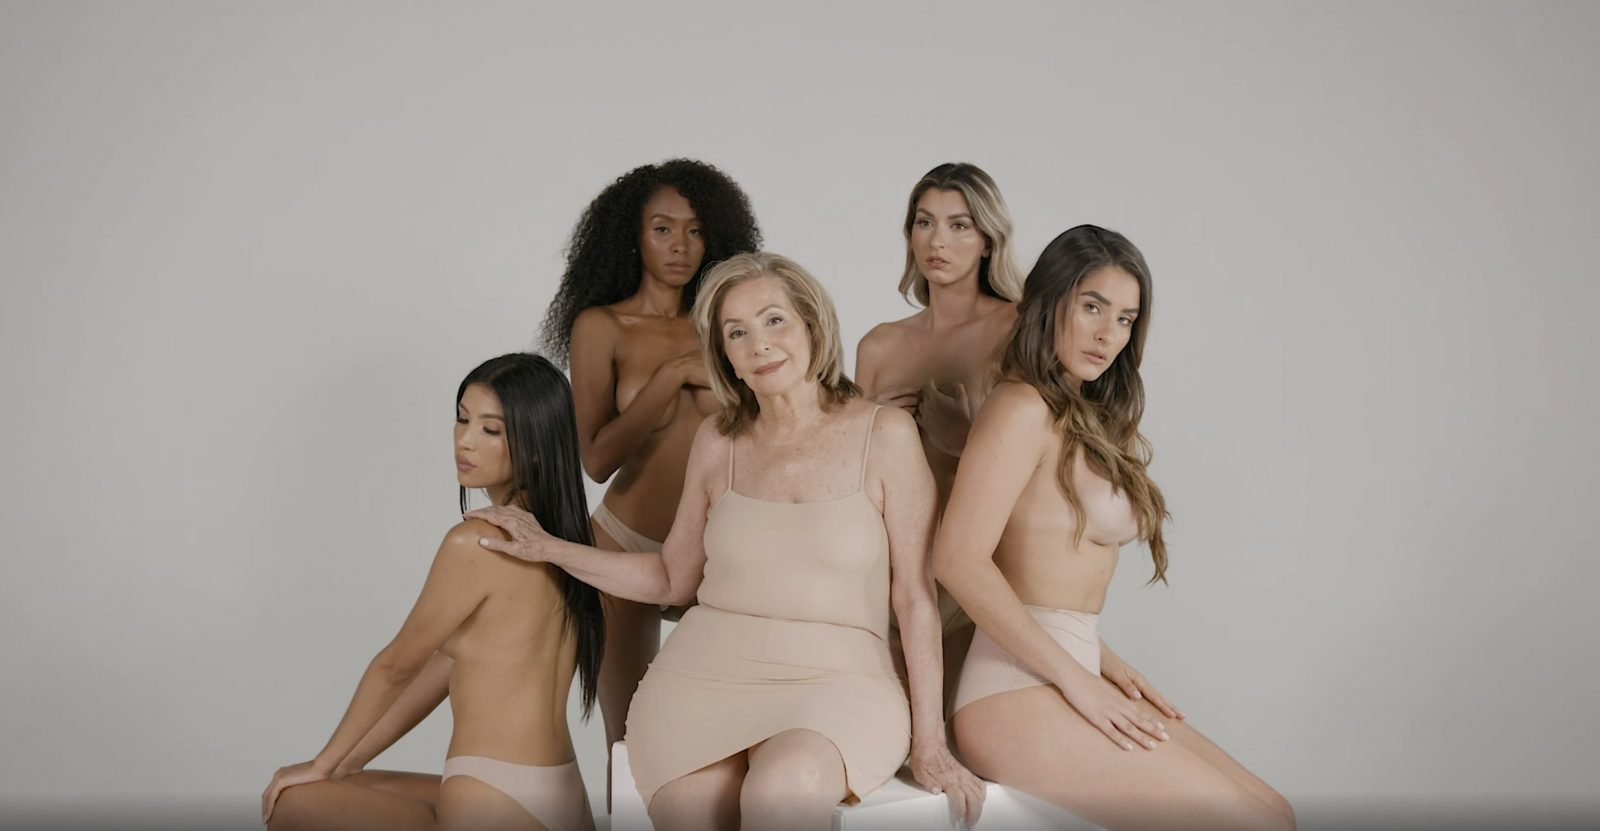 Women standing sitting together